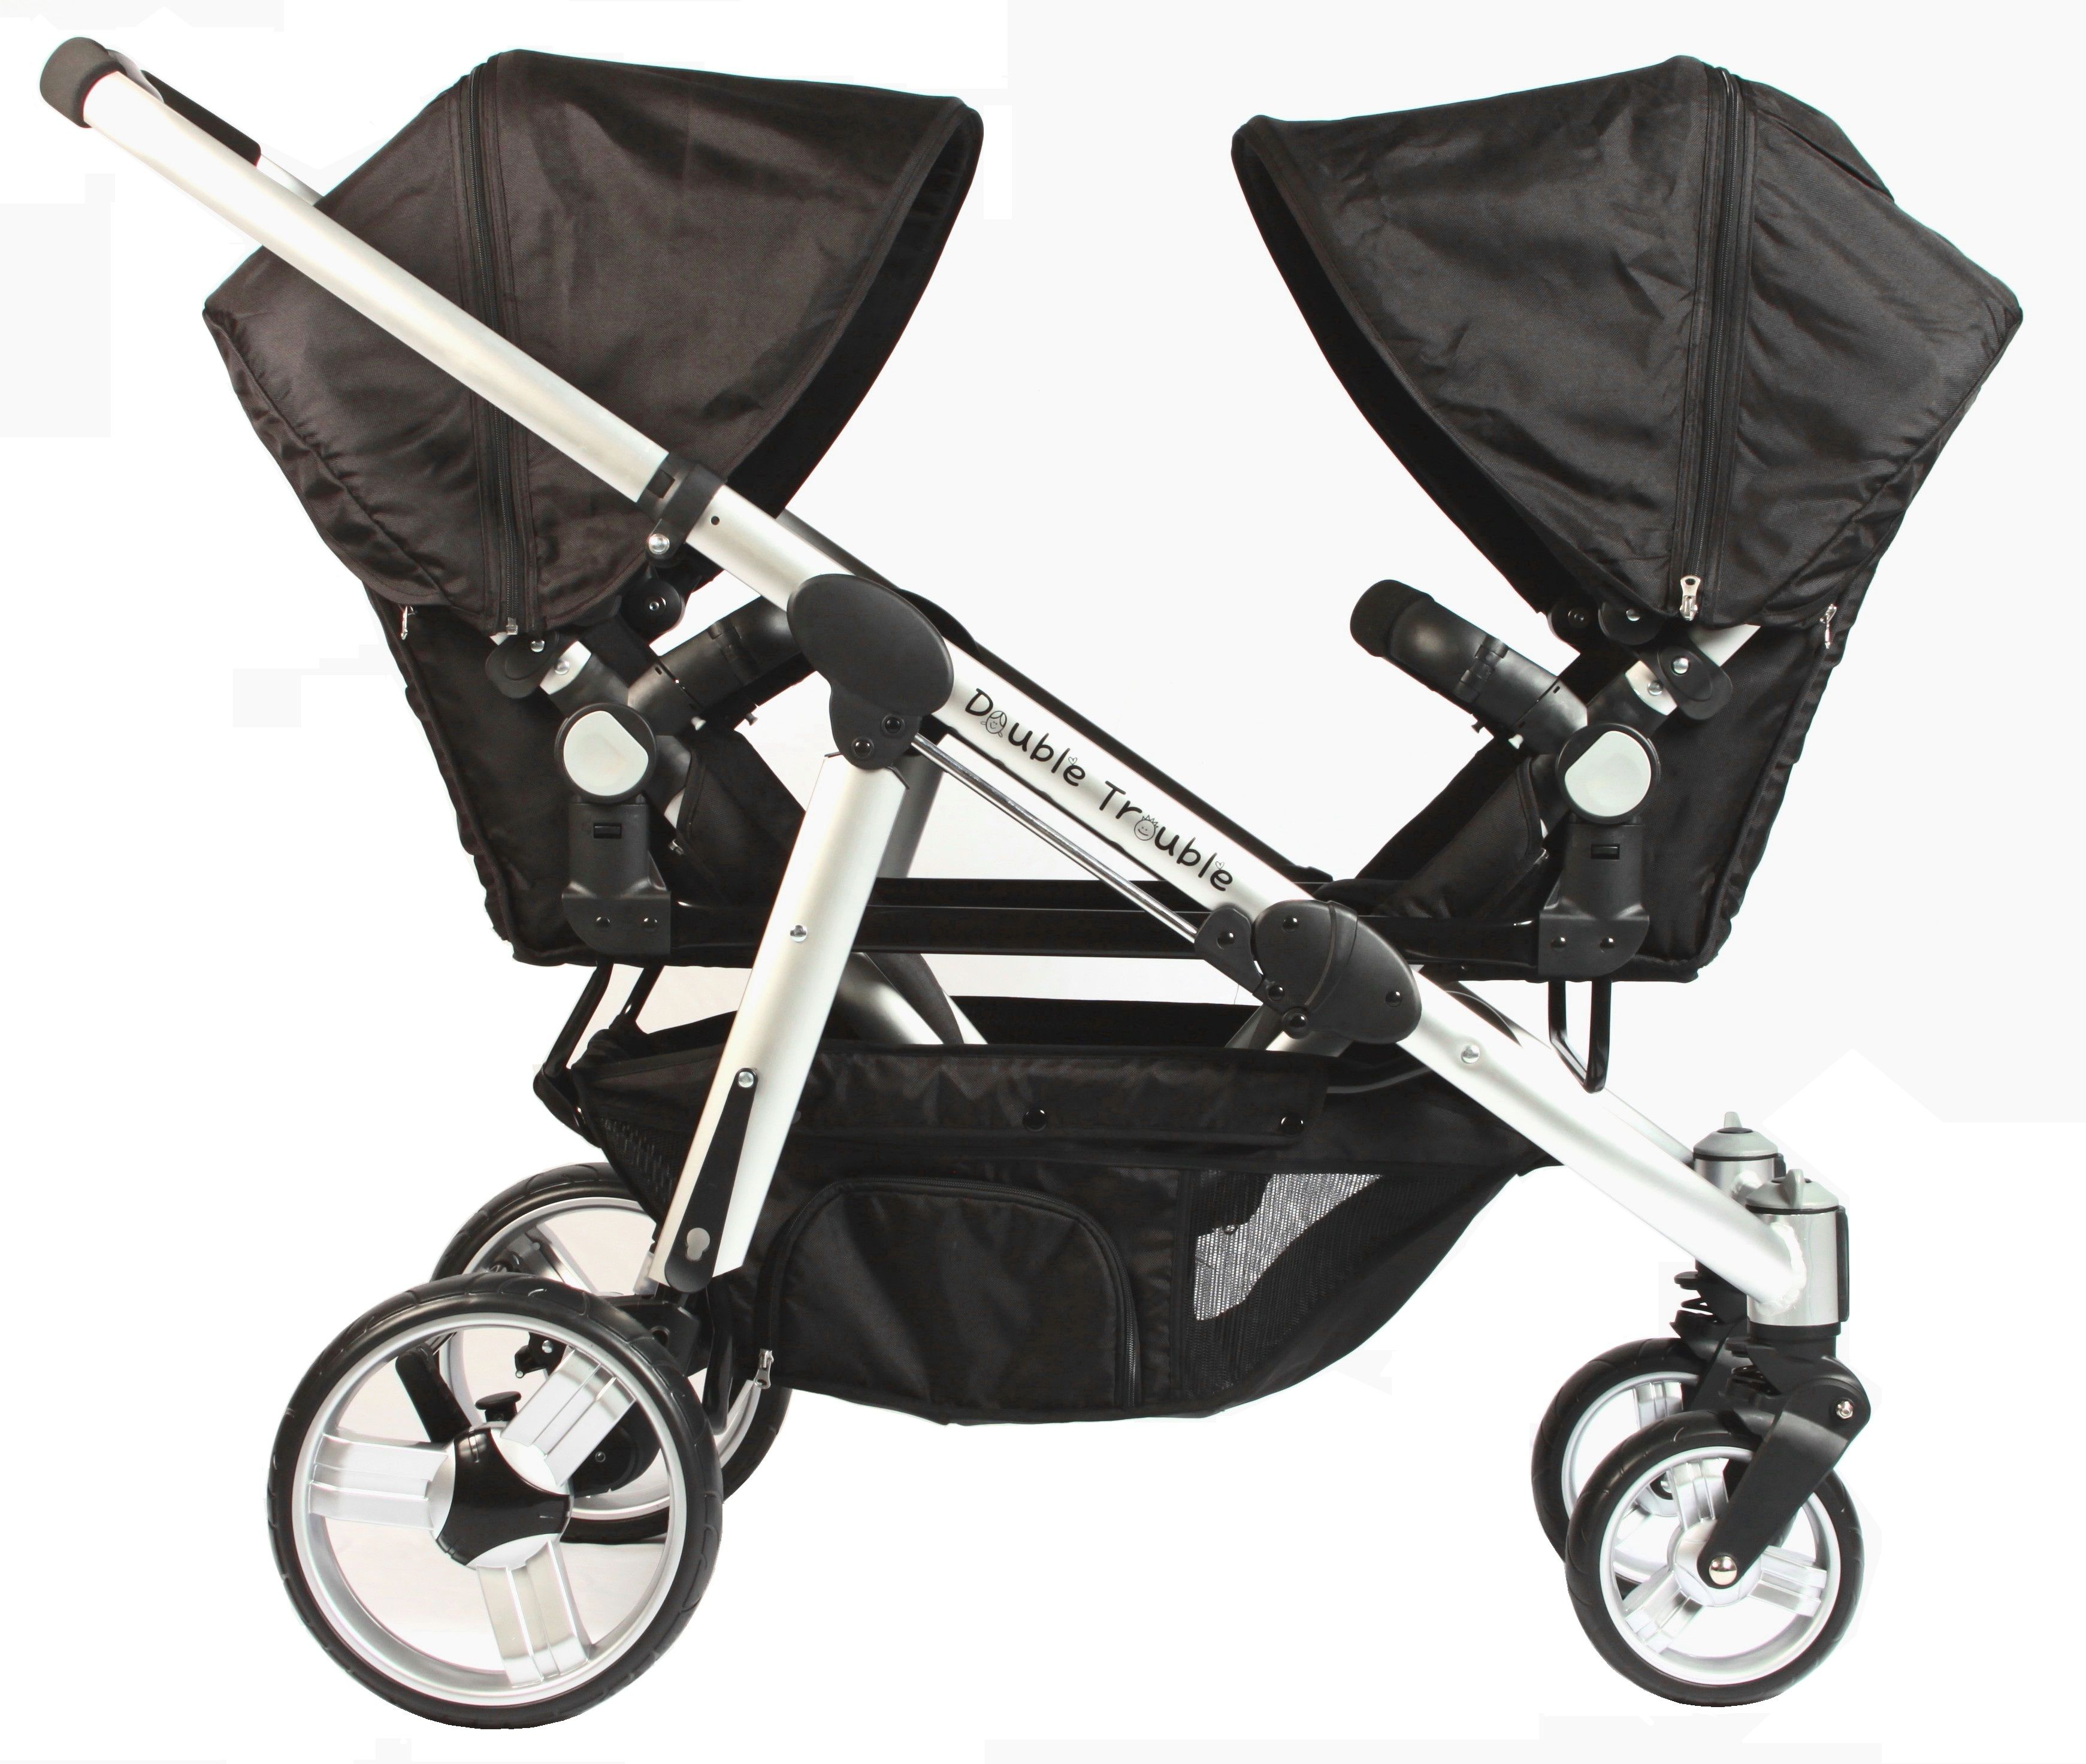 Buggy Board Für Peg Perego Book Strollers Facing One Another In The Double Trouble Twin Pram